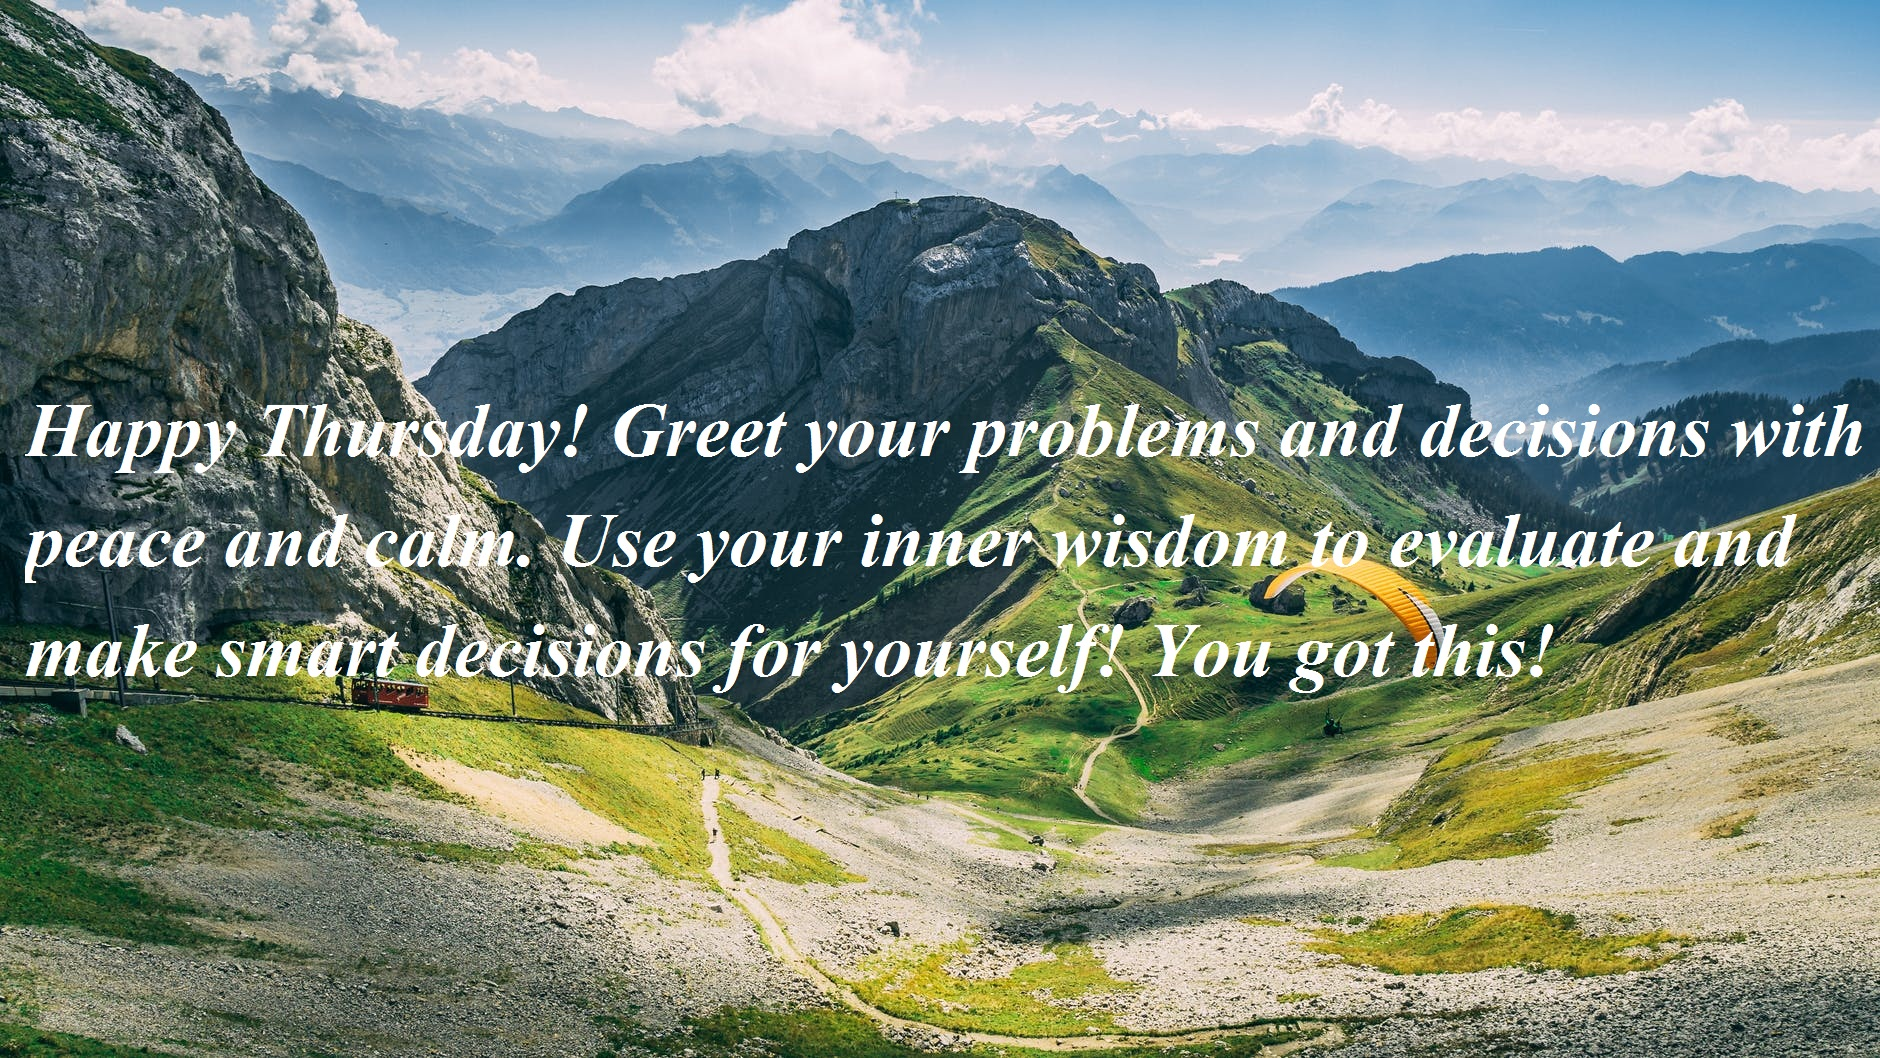 Happy Thursday! Greet your problems and decisions with peace and calm. Use your inner wisdom to evaluate and make smart decisions for yourself! You got this!